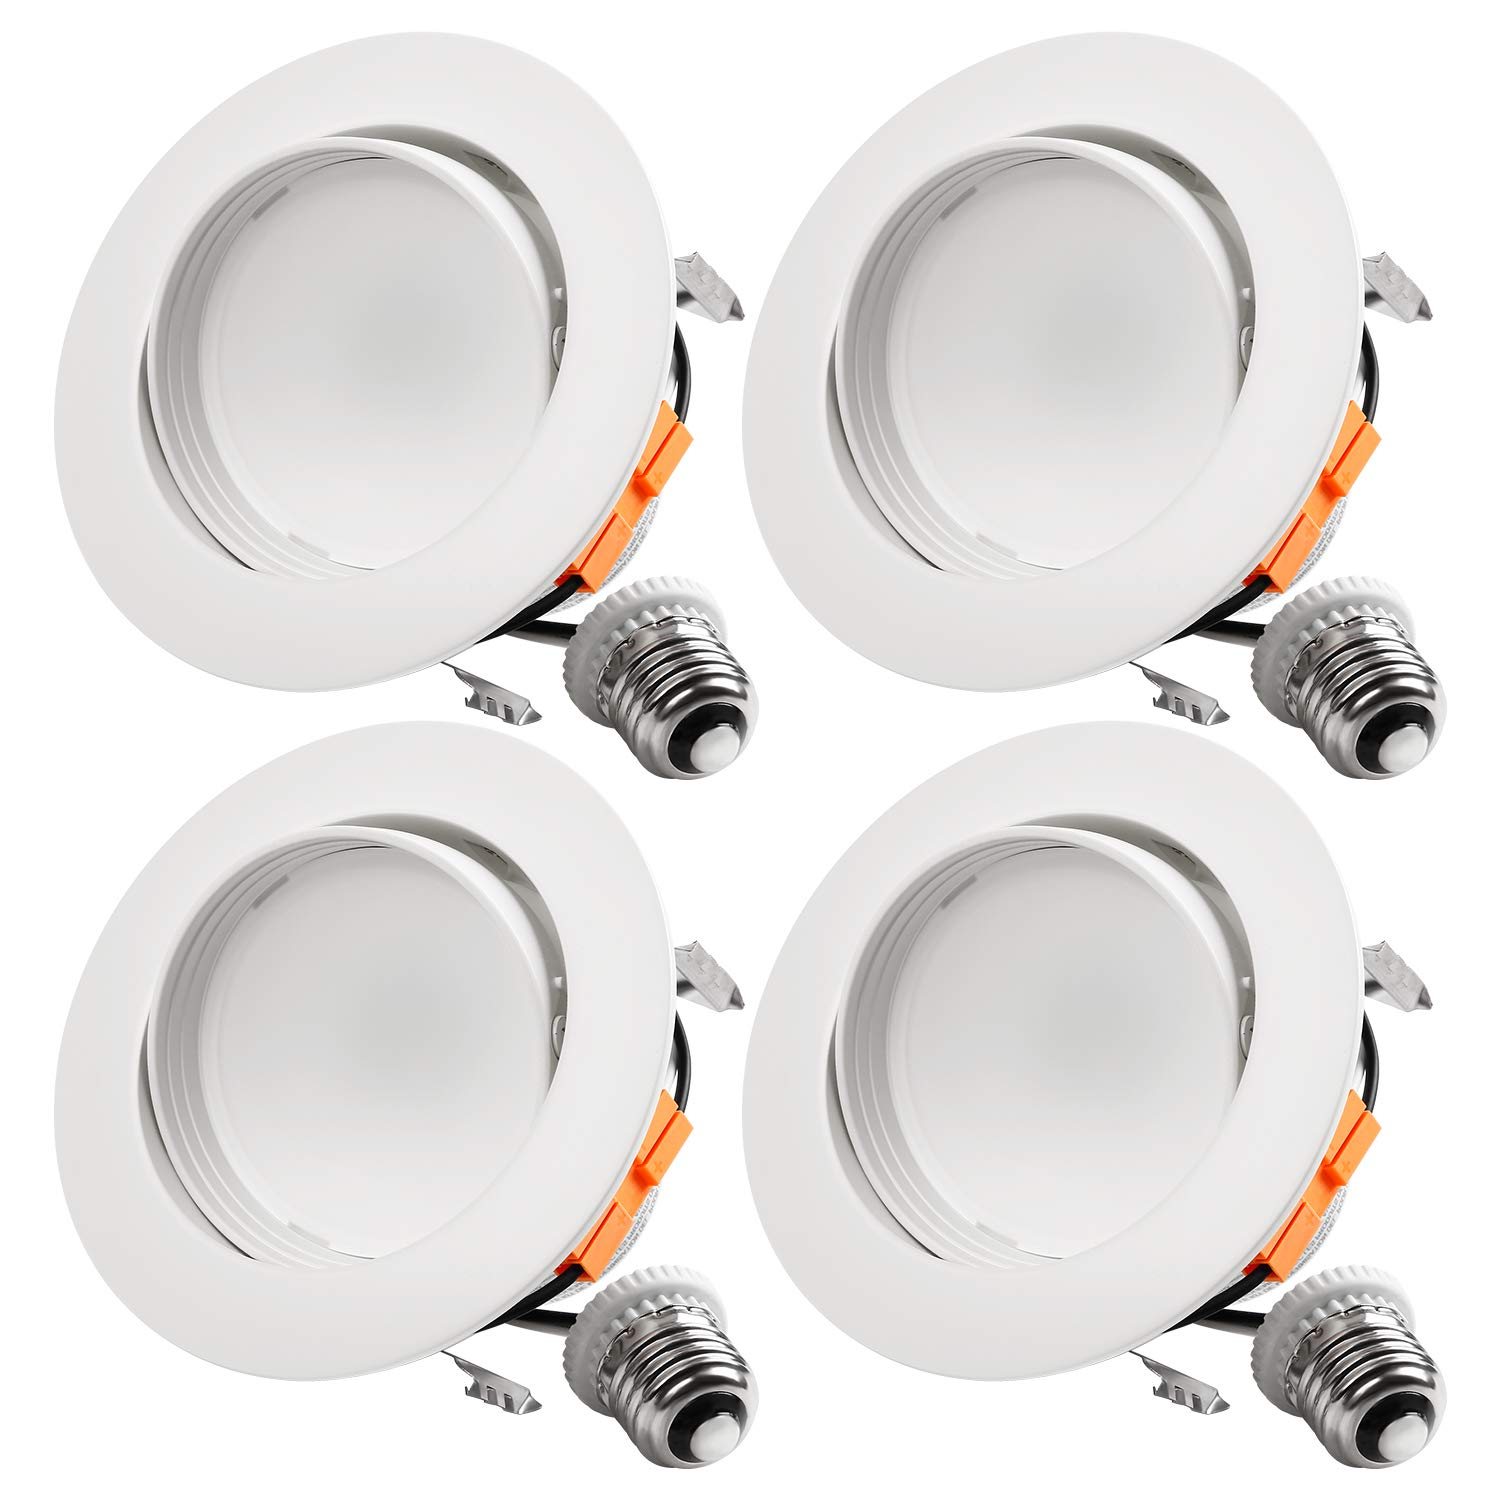 TORCHSTAR 10W 4-Inch Retrofit LED Gimbal Downlight, 650lm, 65W Eqv, UL & Energy Star Listed, Dimmable, Adjustable CRI90 Offwhite Recessed Ceiling Light, 3000K Warm White, 5 Years Warranty, Pack of 4